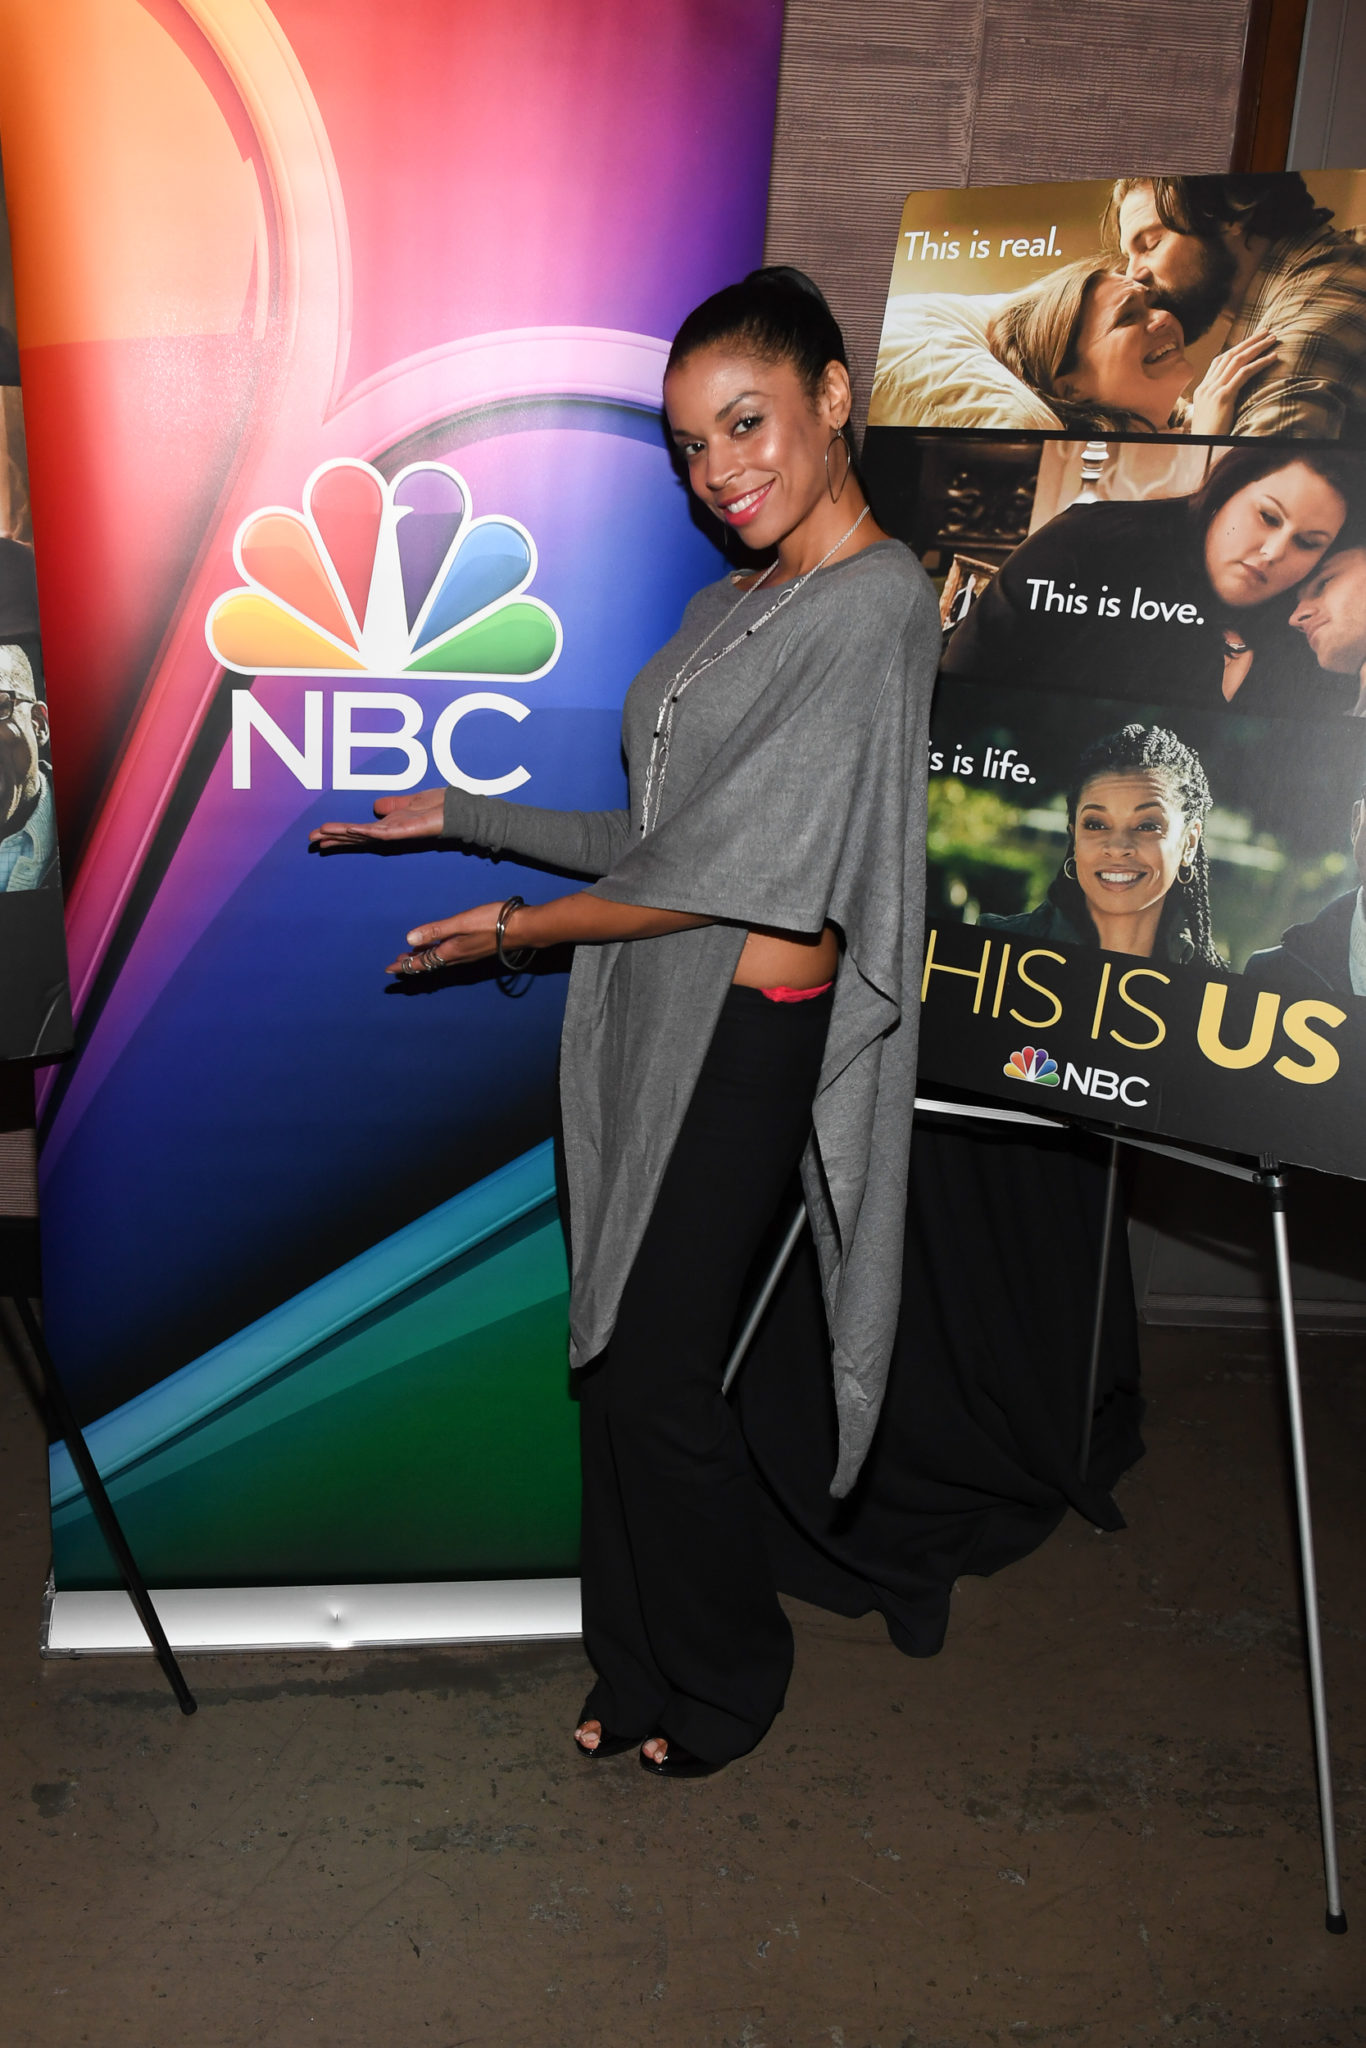 NBC's This Is Us Private Dinner With Actress Susan Kelechi Watson